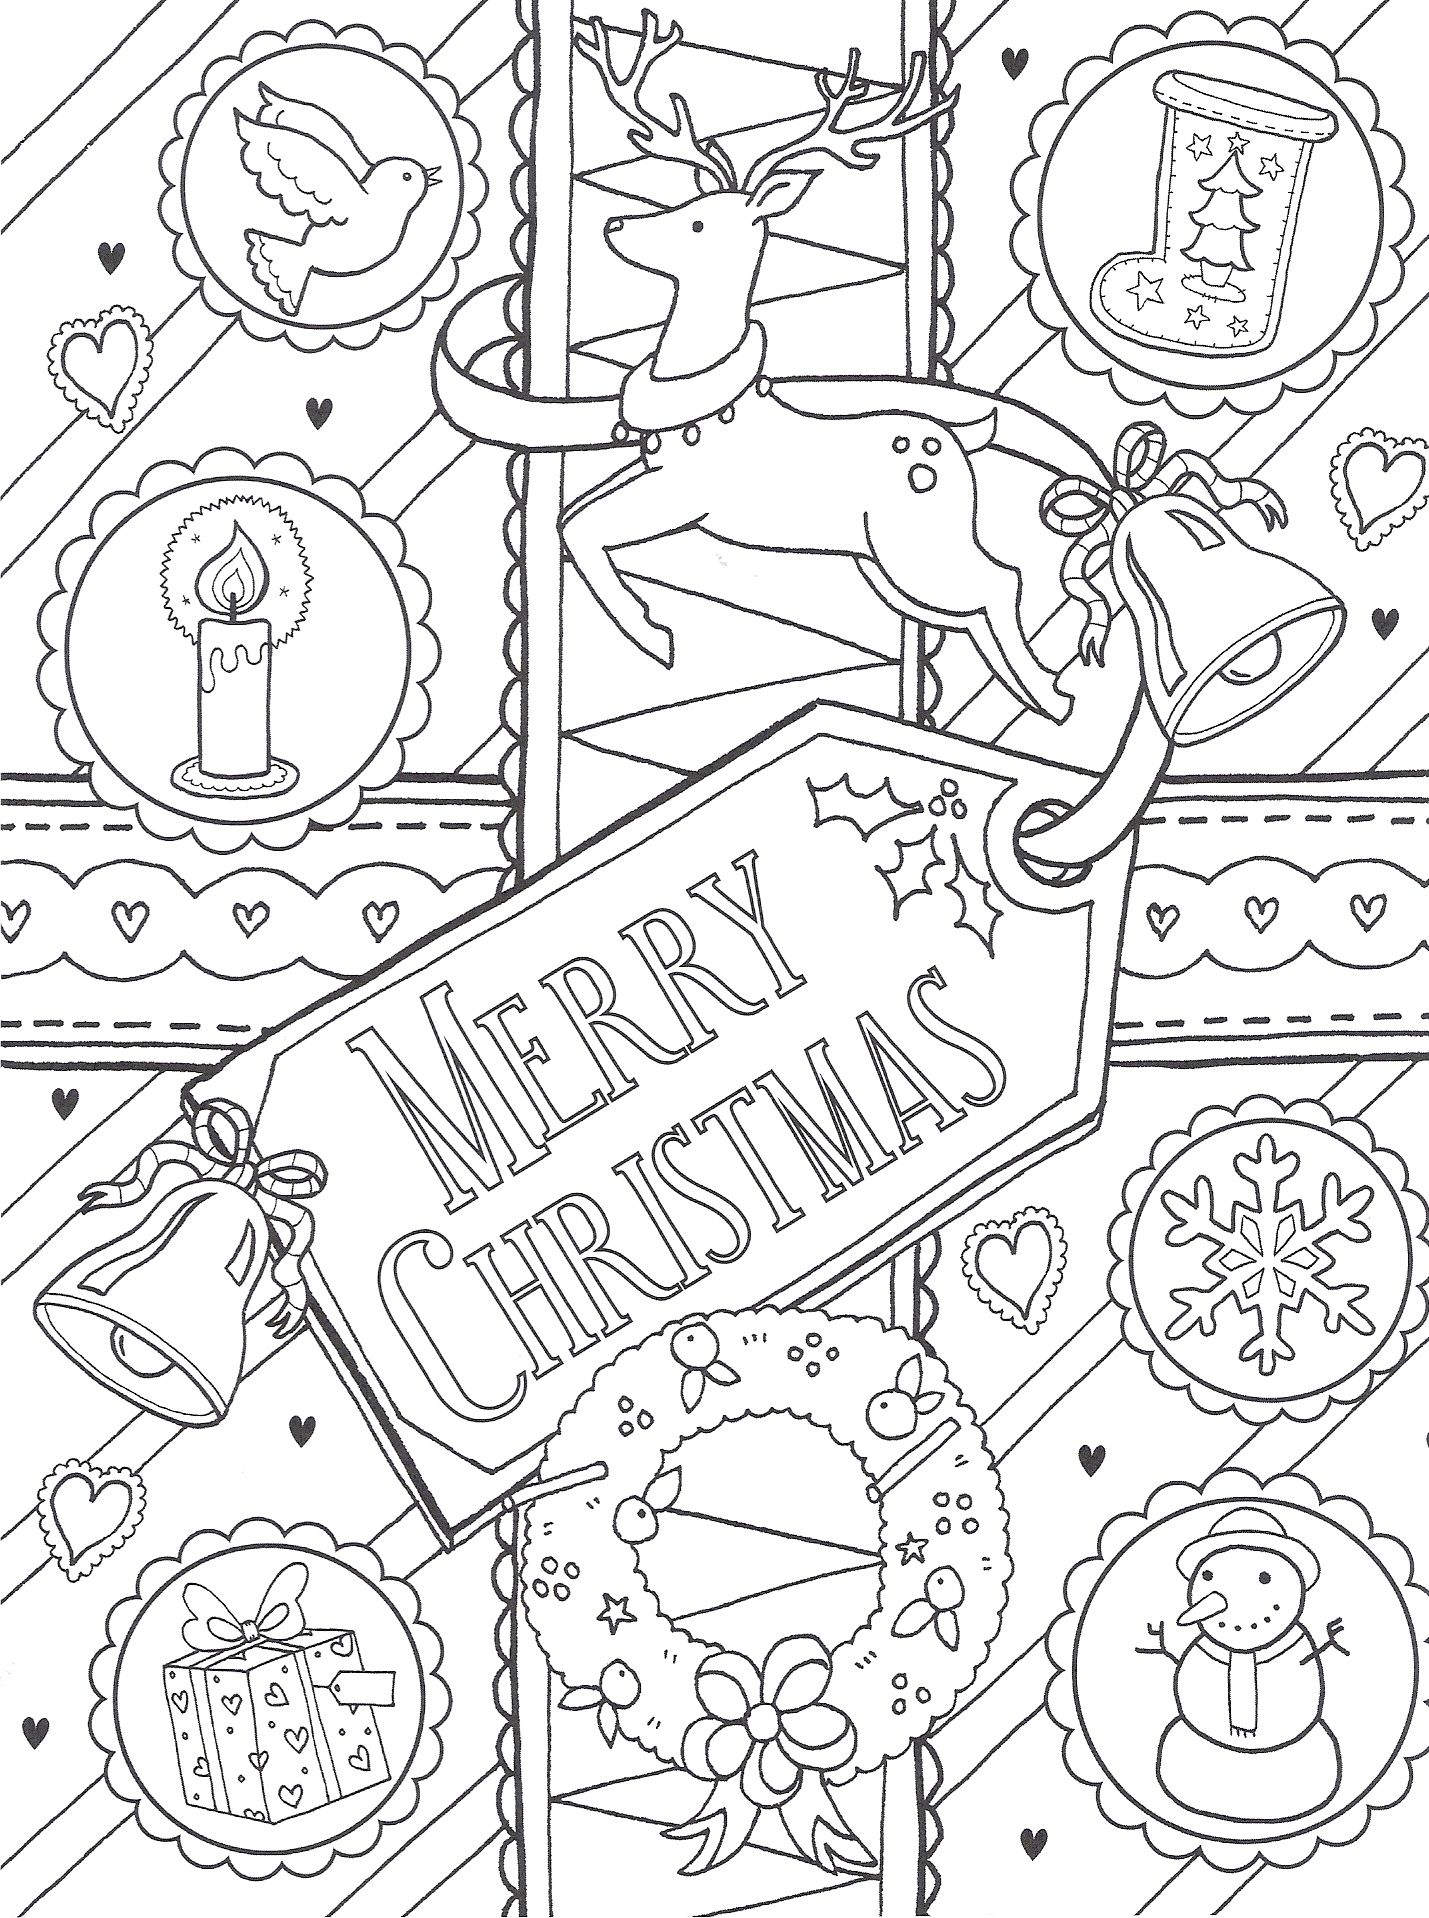 Merry Christmas Coloring Pages For Adults With Colouring Page Collection Pinterest